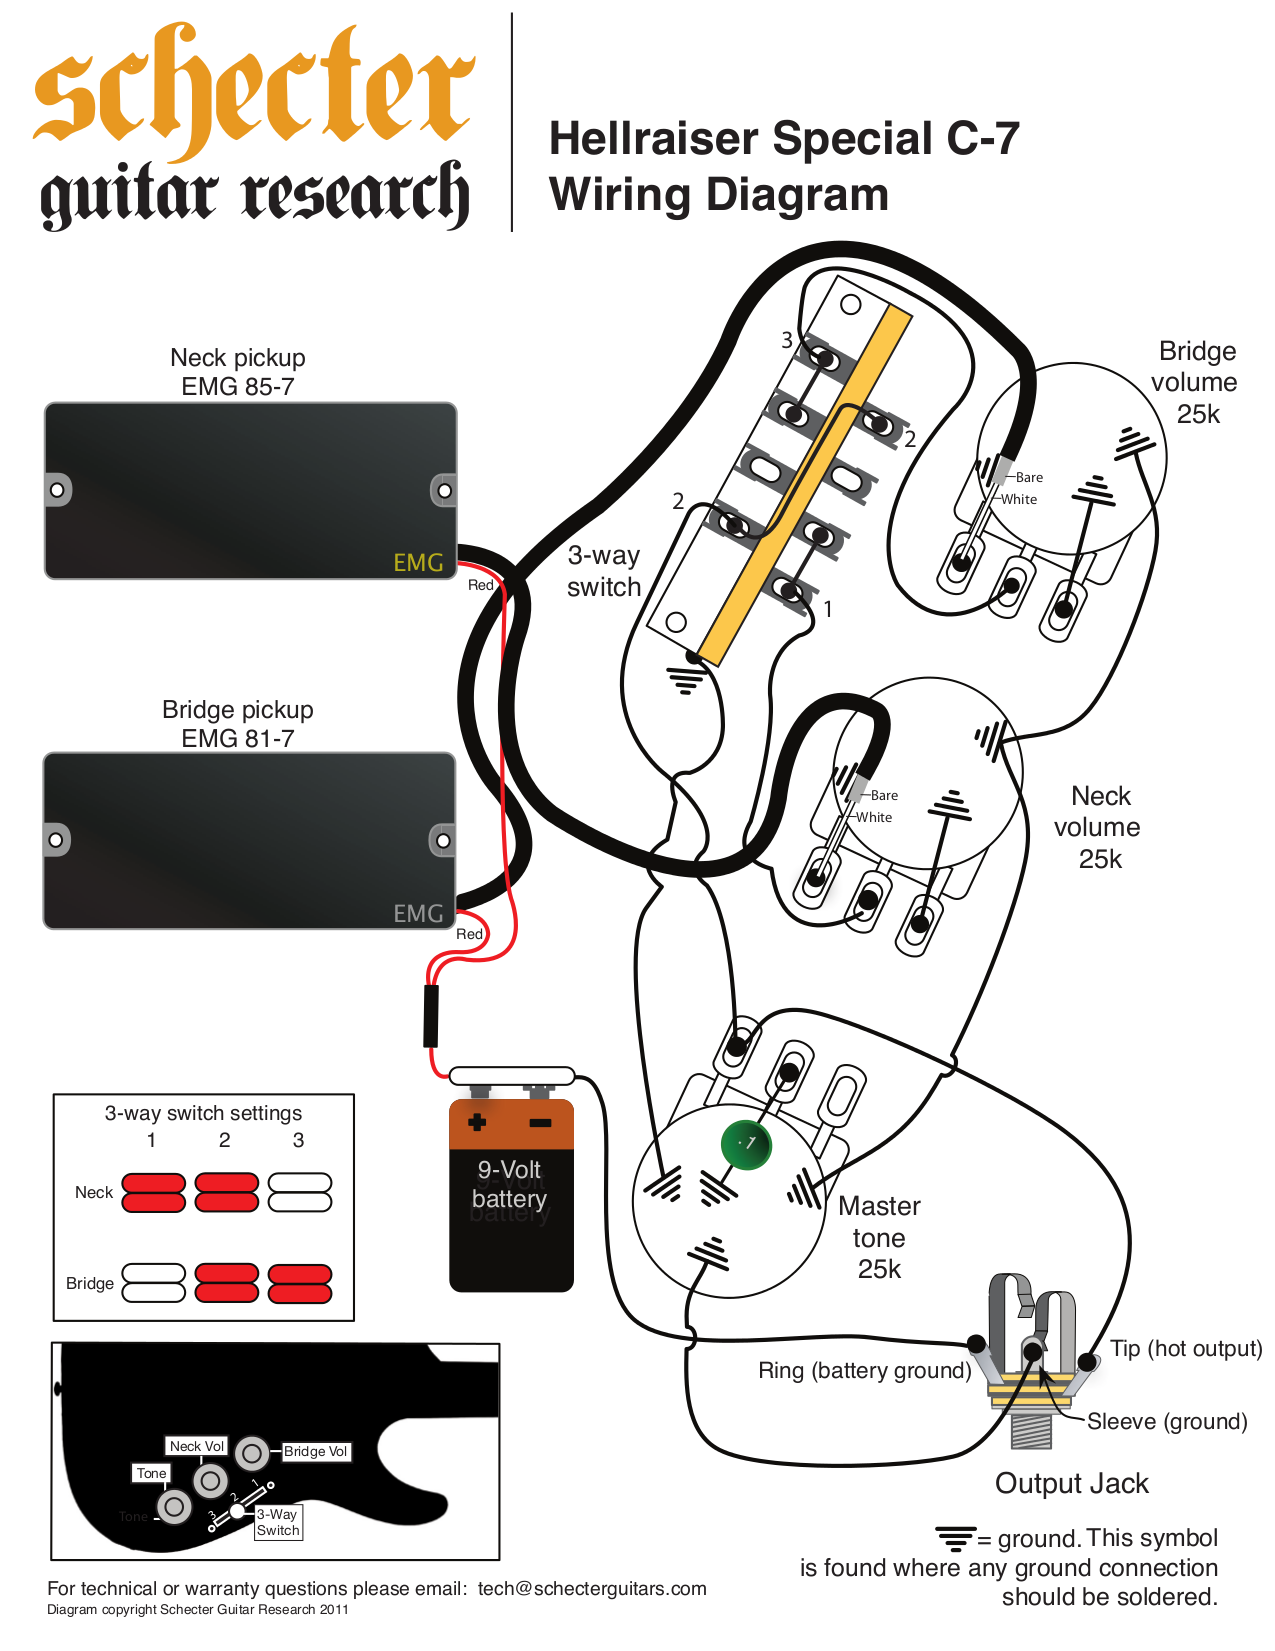 Schecter Wiring Diagram 23 Images Diagrams Gibson Explorer Pdf Guitar Hellraiser Special C 7 Page Preview